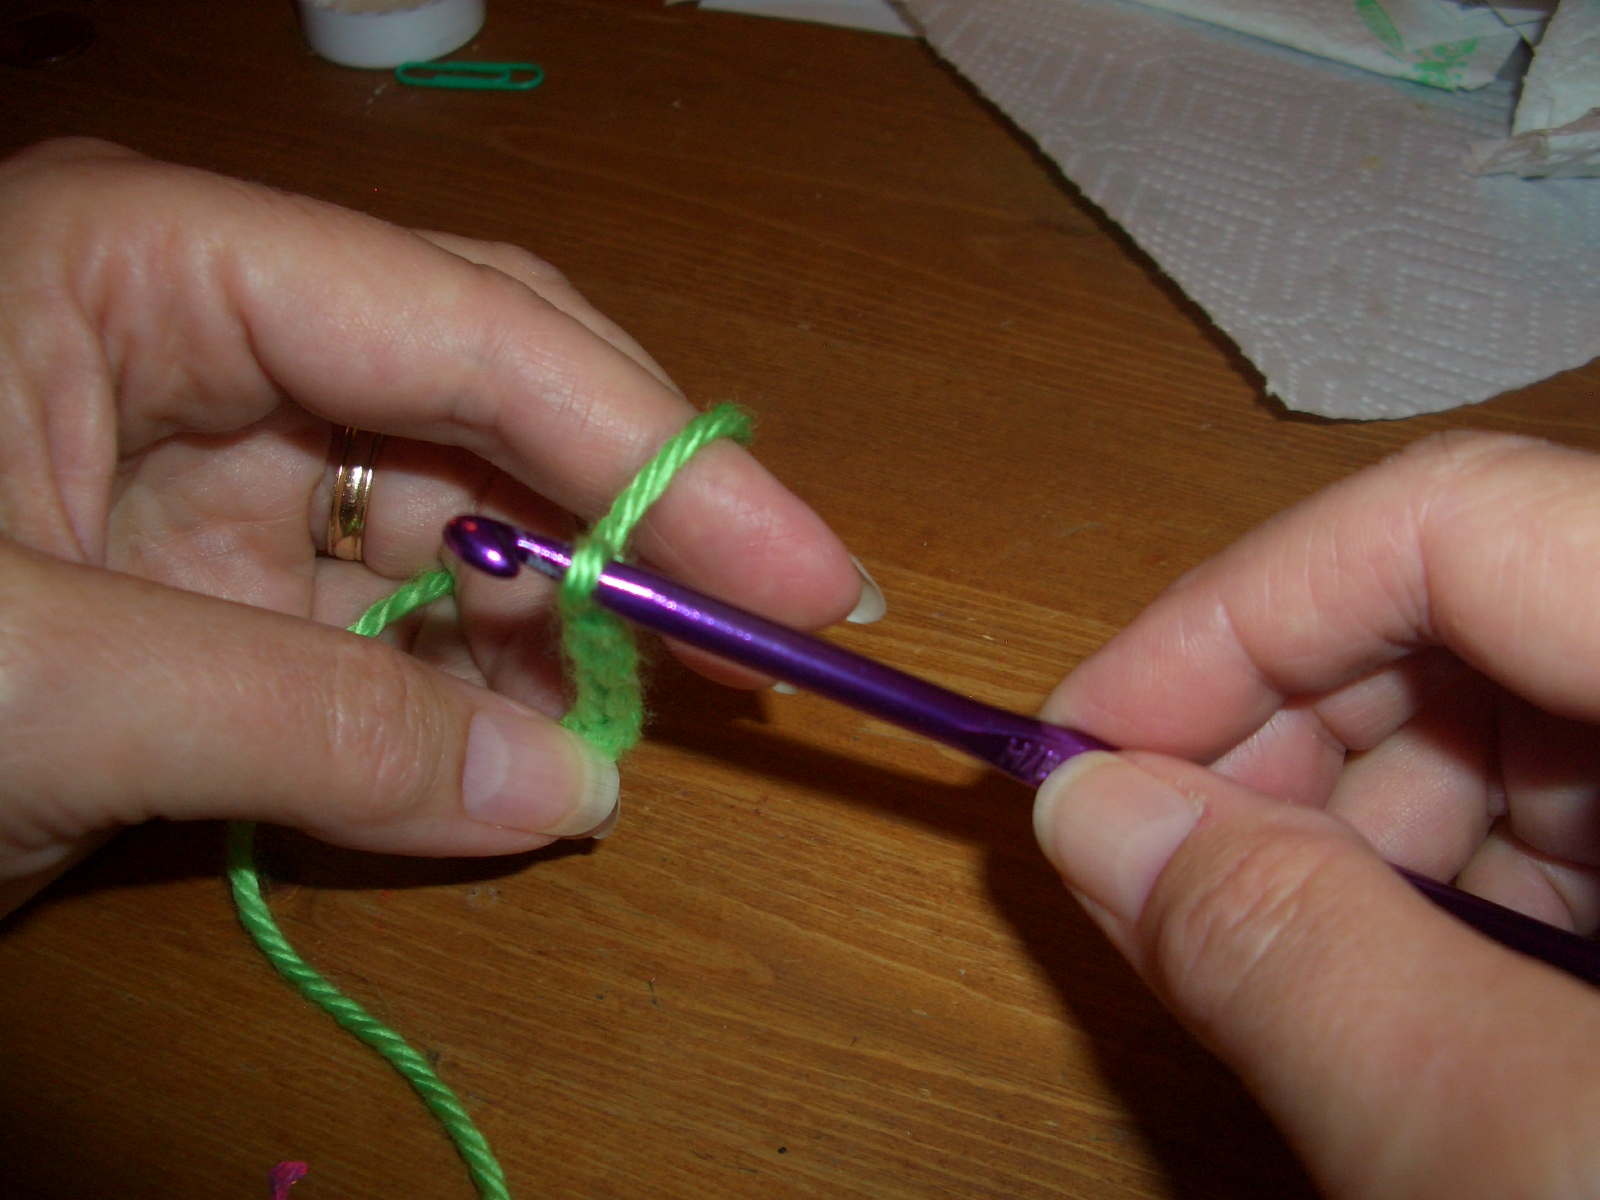 Crocheting Too Tightly : Slide the yarn back to the middle of the shaft, and then it will be ...